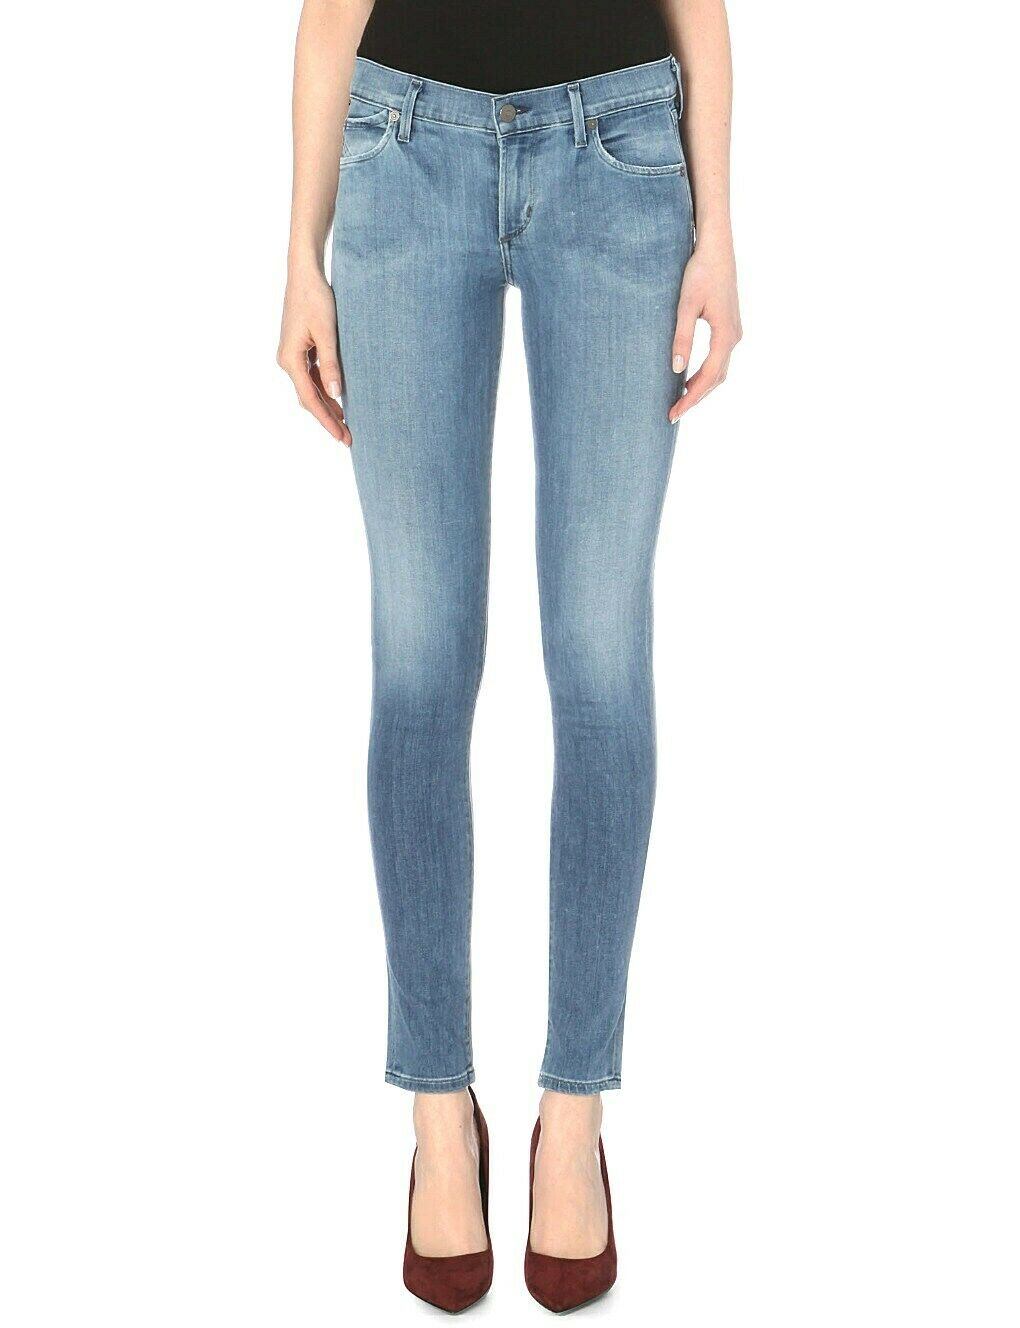 CITIZENS OF HUMANITY AVEDON ULTRA SKINNY LEG JEANS IN BERKELEY 25 NEW